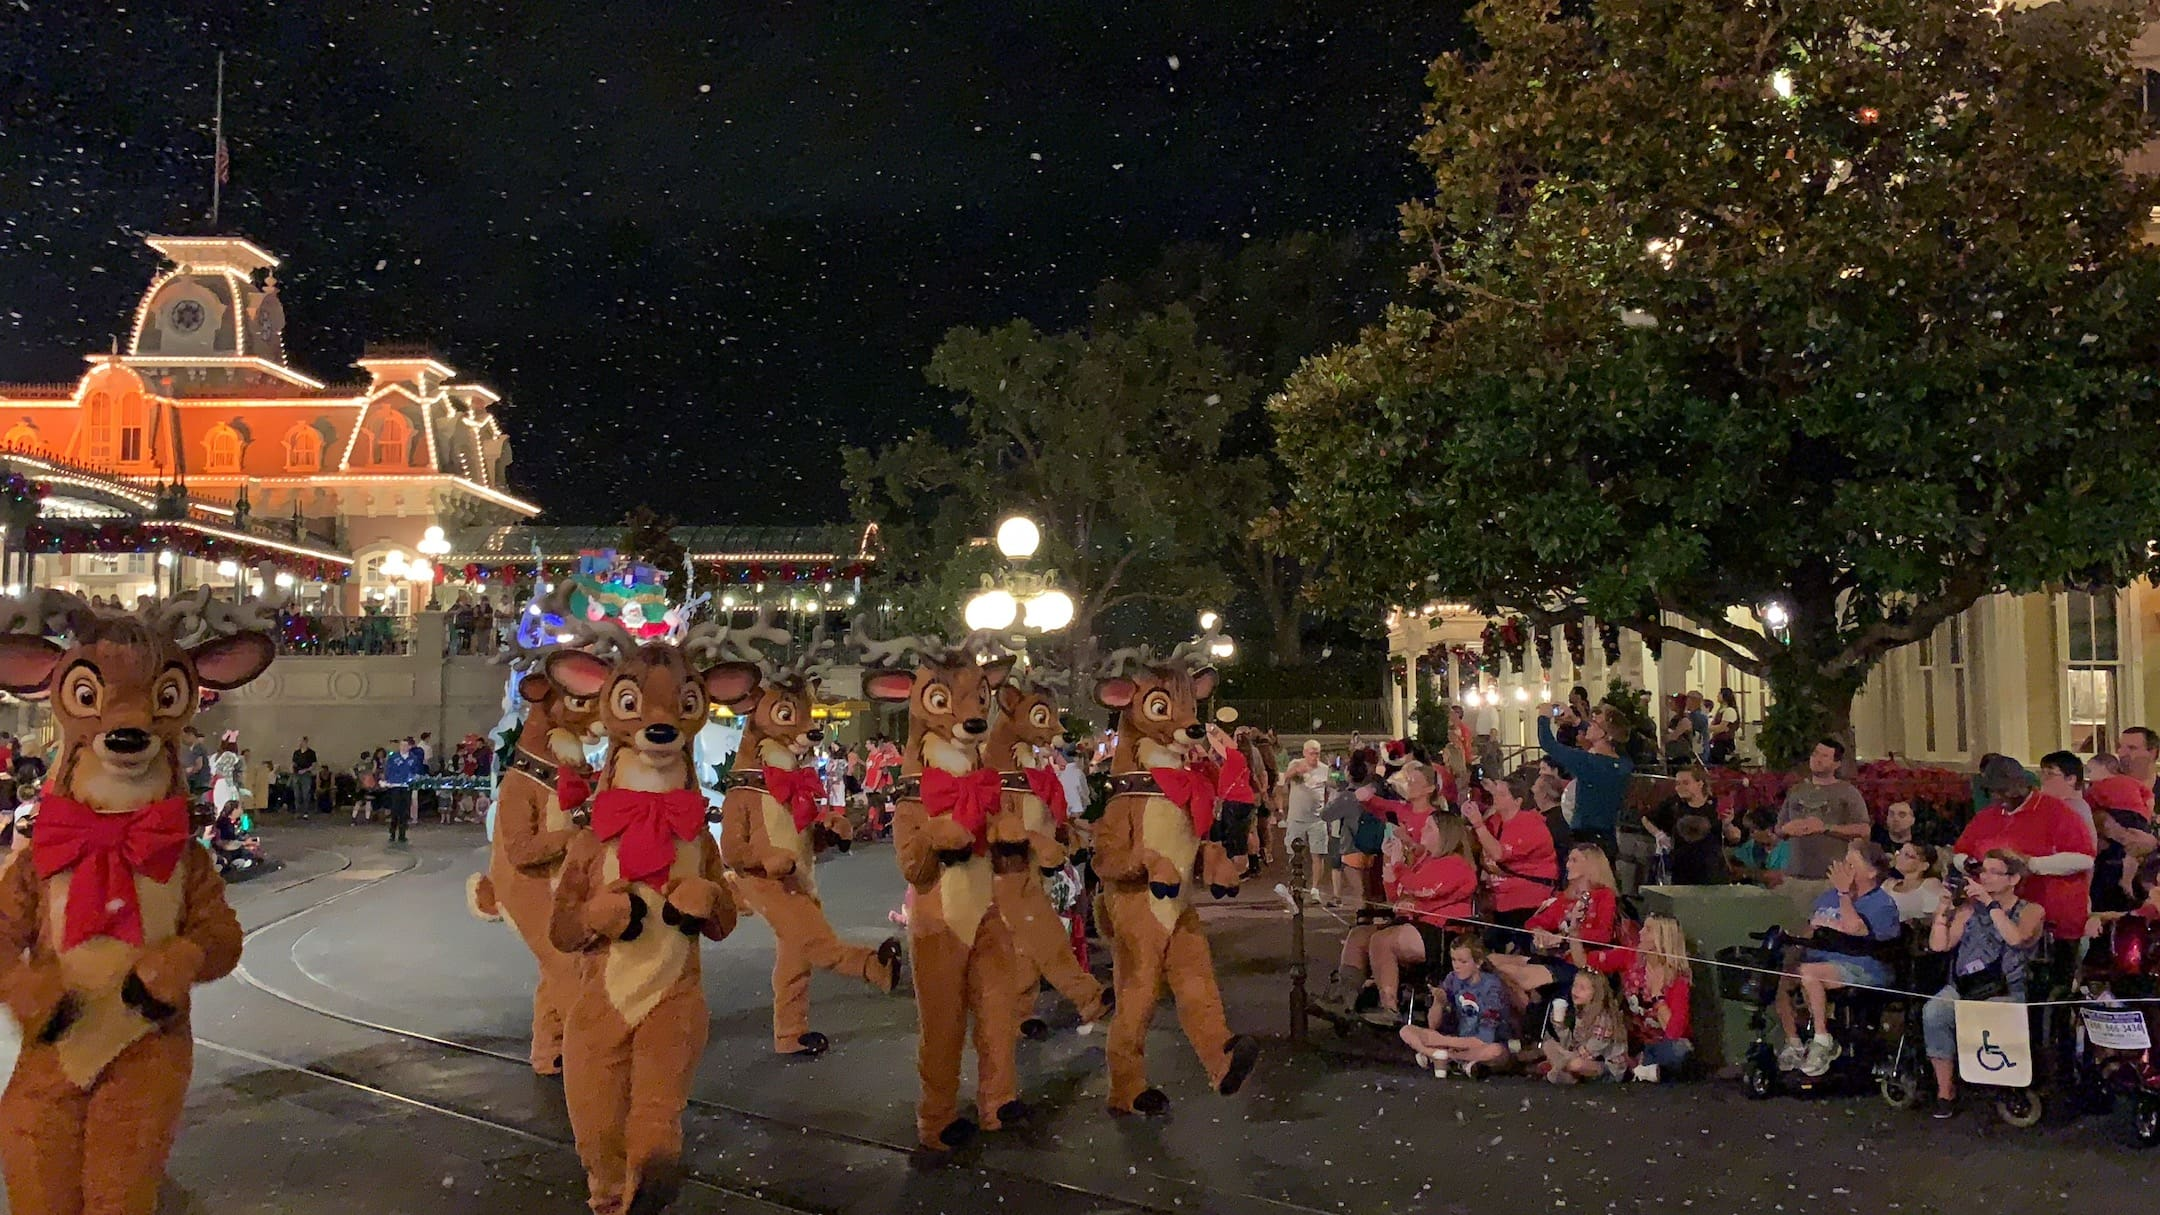 Dancing Reindeer Mickey's Very Merry Christmas Party Parade Magic Kingdom